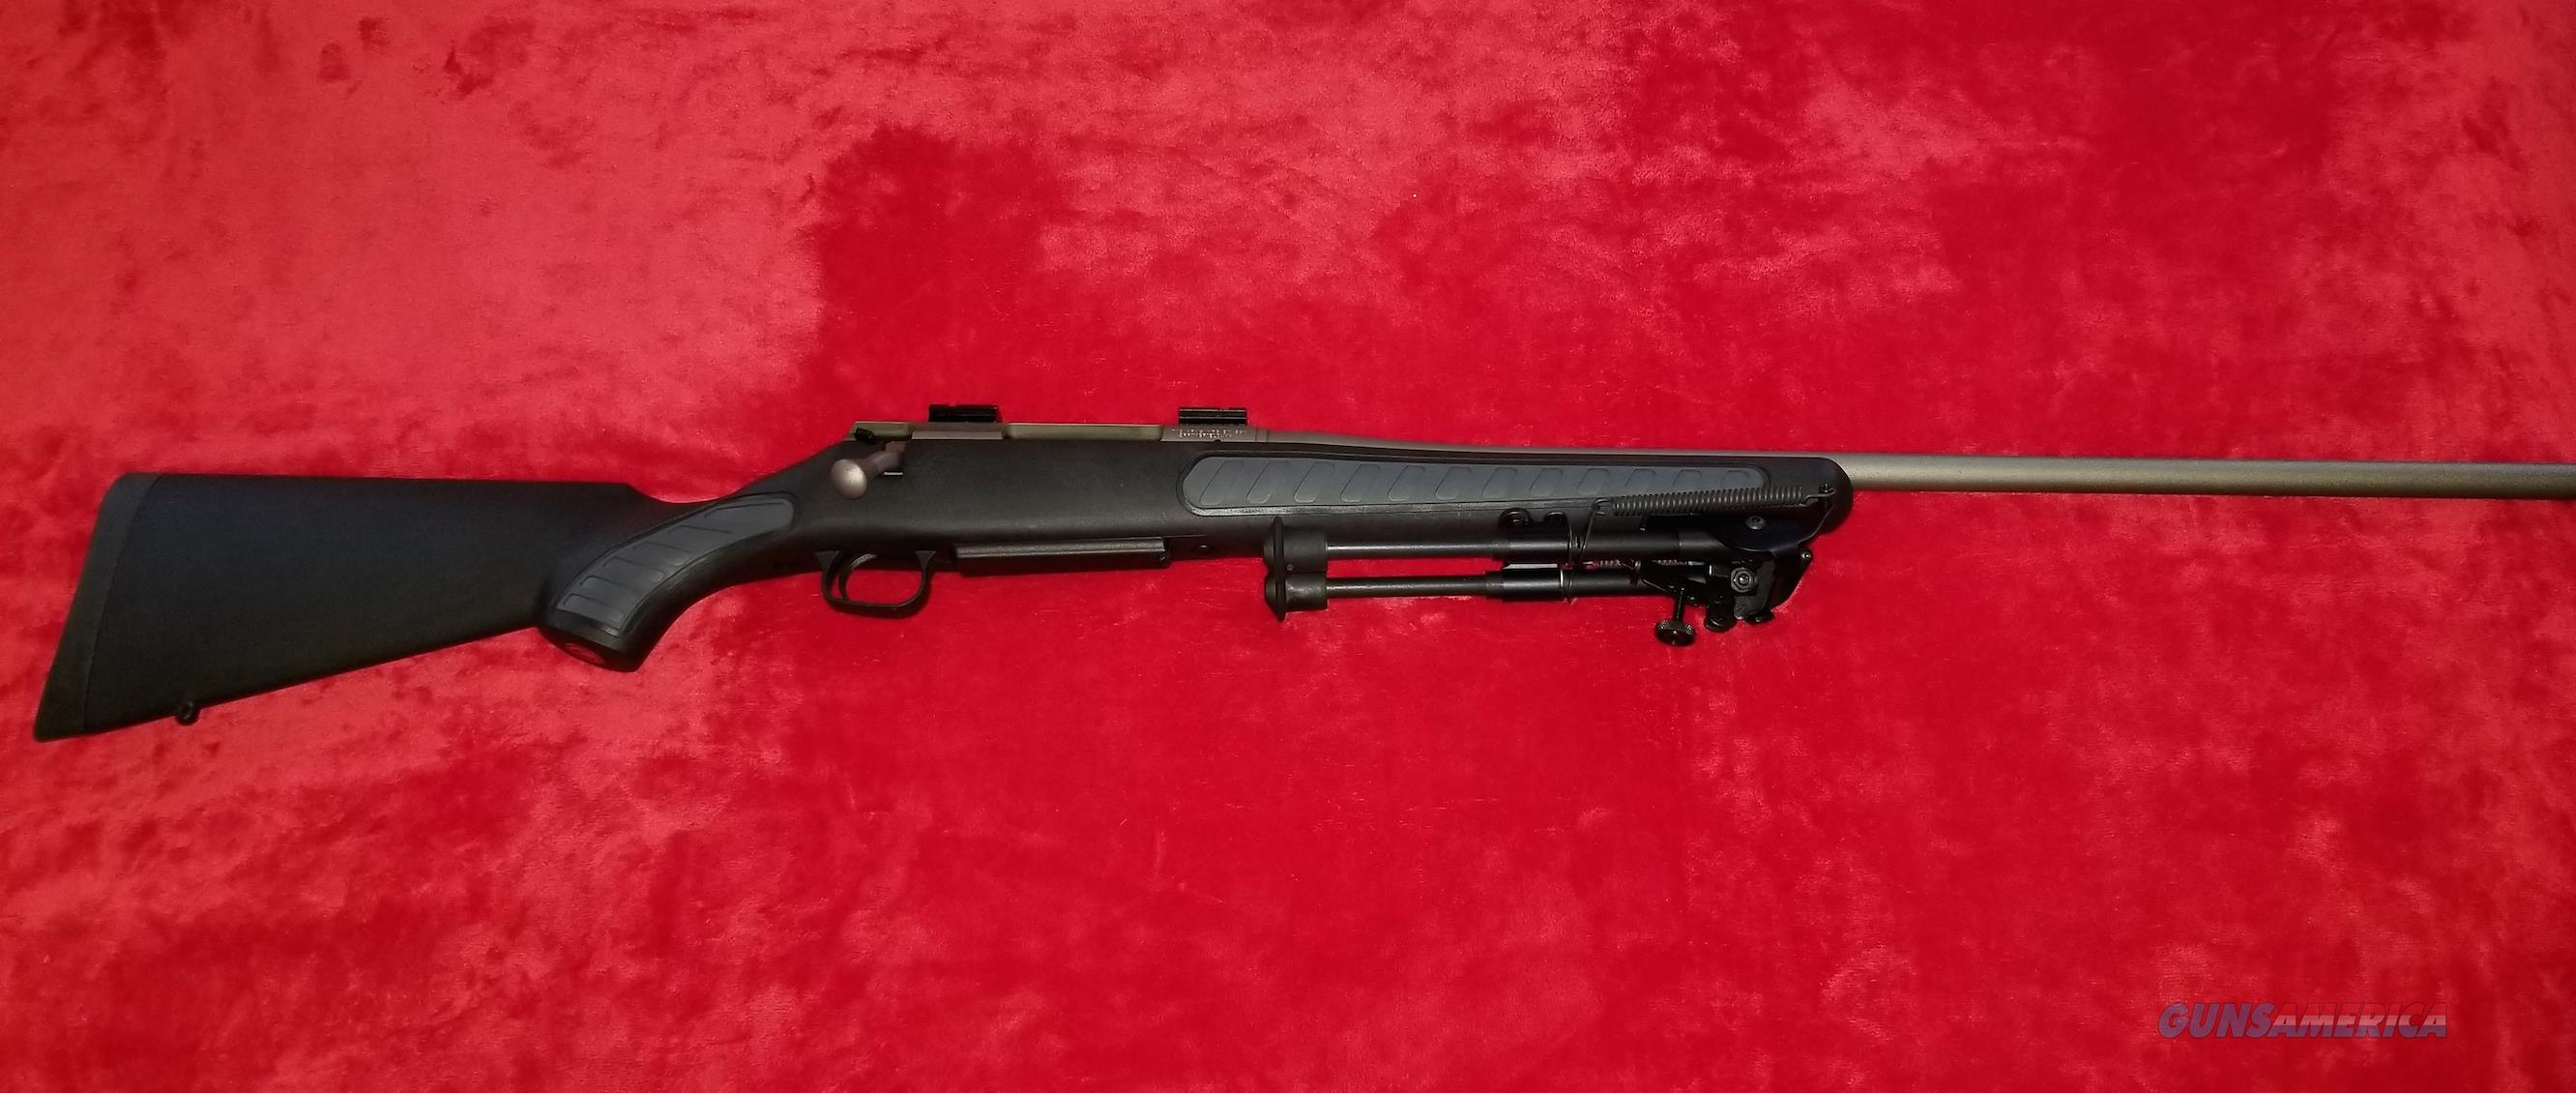 T/C Venture 30-06 Sprg 24'' Bbl Ws/Comp with Bipod  Guns > Rifles > Thompson Center Rifles > Venture